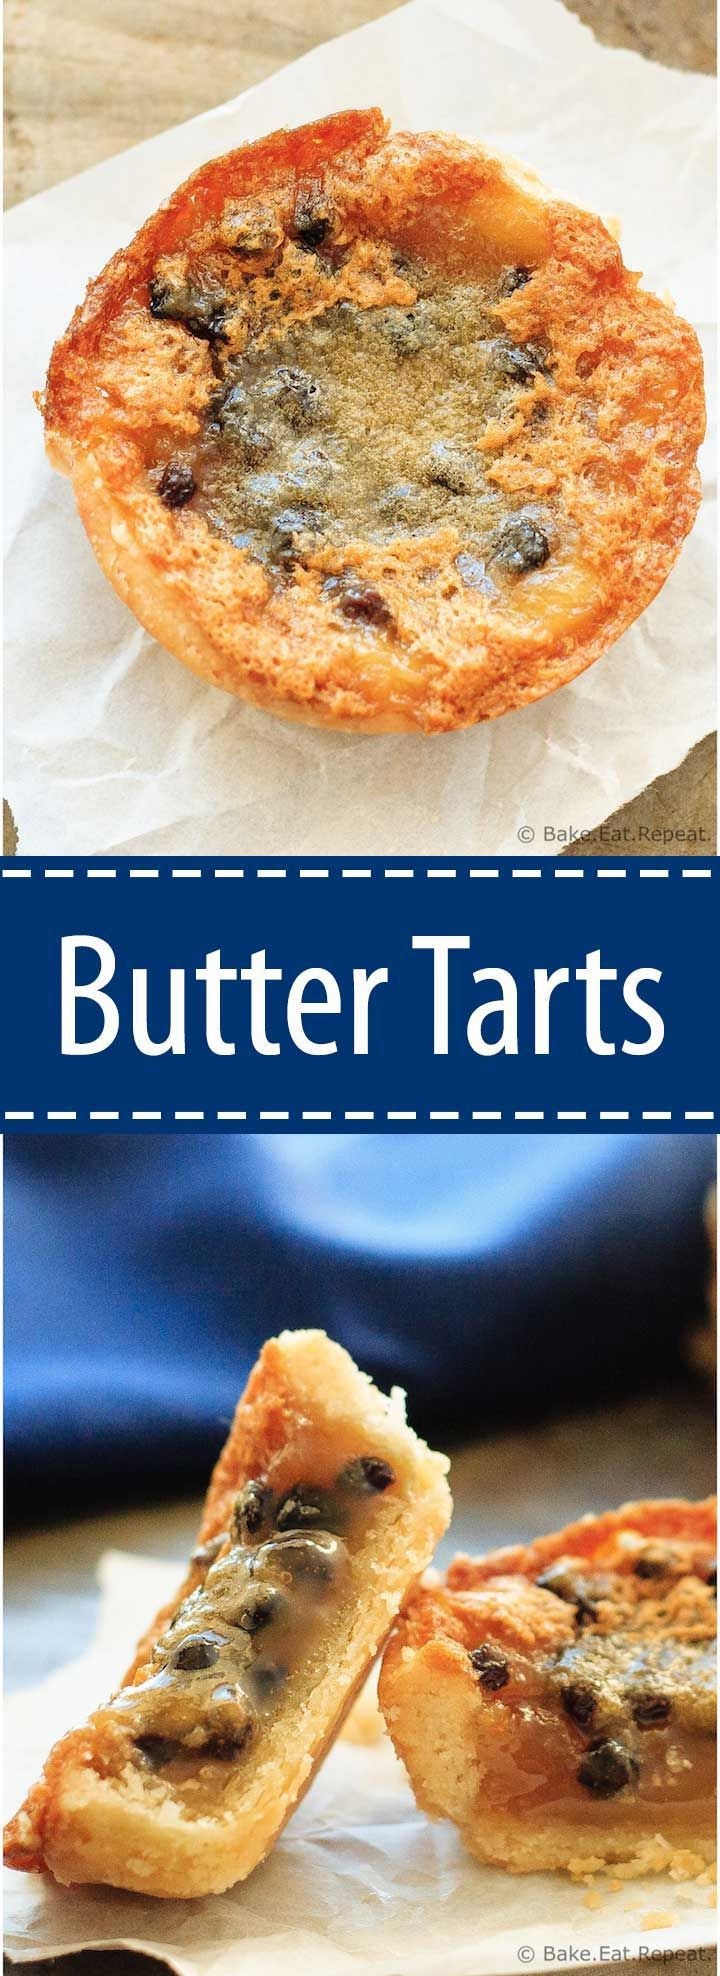 Butter Tarts - Sweet, buttery, caramel-y, amazing. These butter tarts are a Christmas tradition around here!